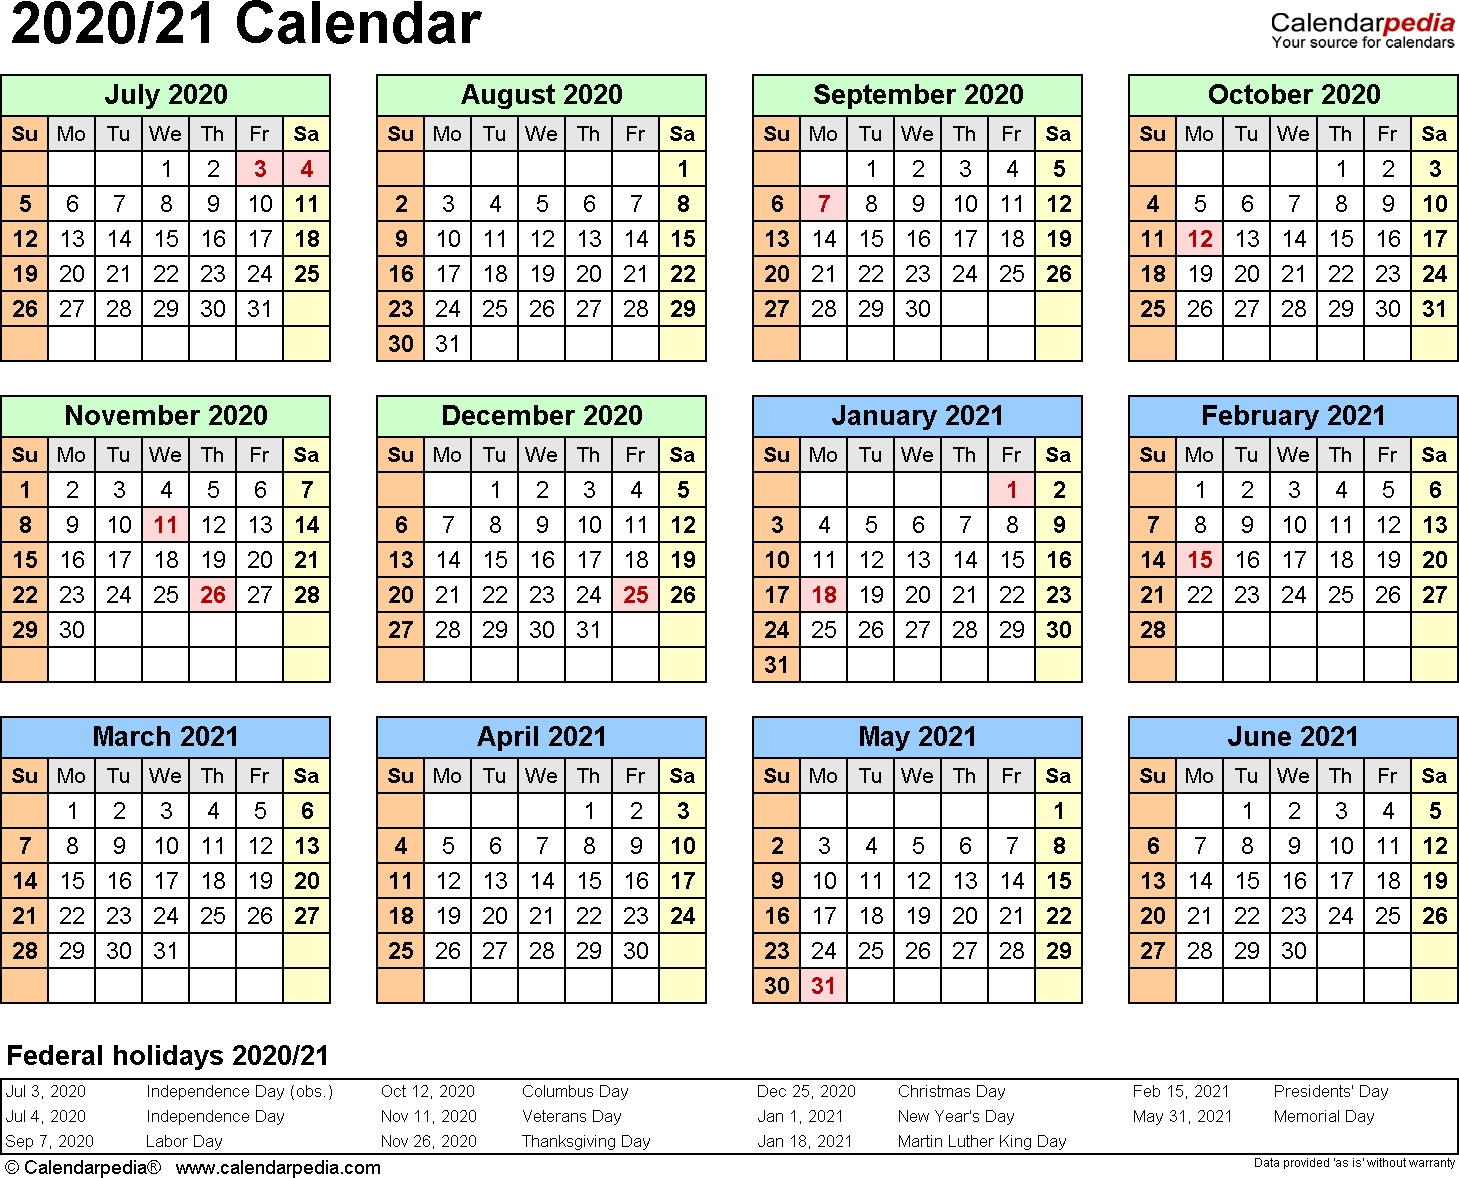 Split Year Calendar 2020/21 (July To June) - Word Templates in Free At A Glance Editable Calendar July 2019-June 2020